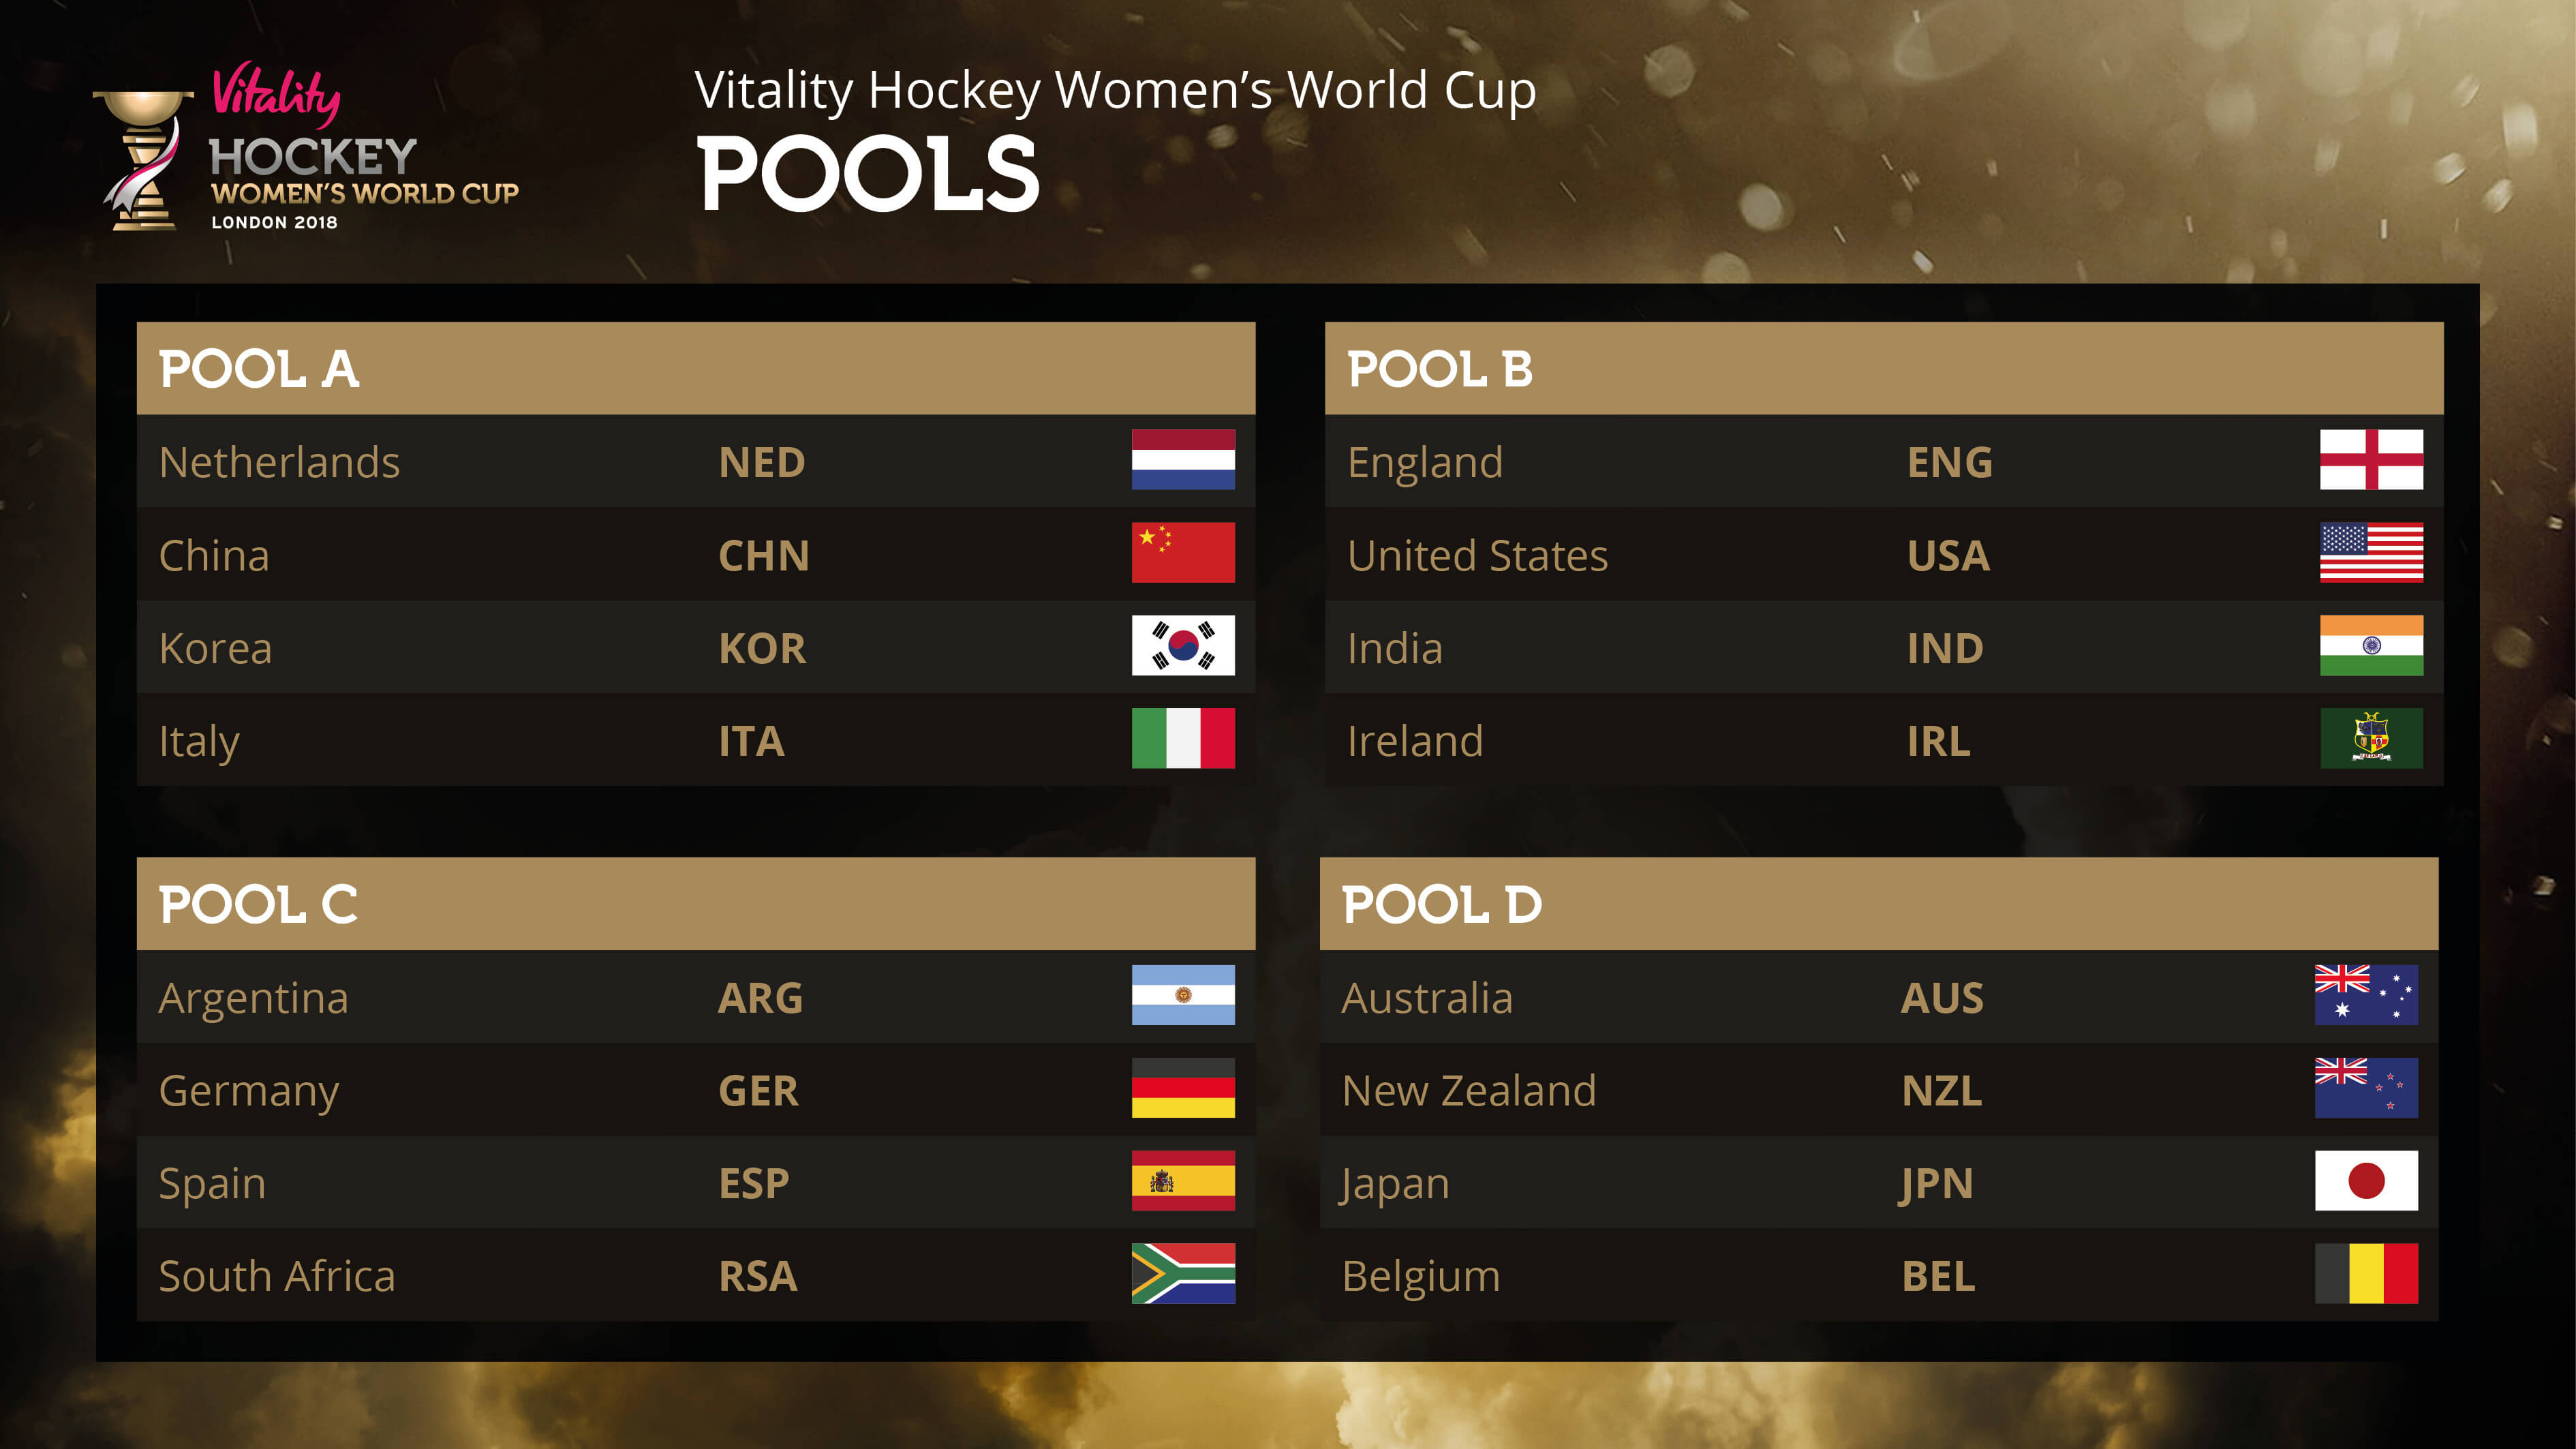 Women's Hockey World Cup Pools 2018